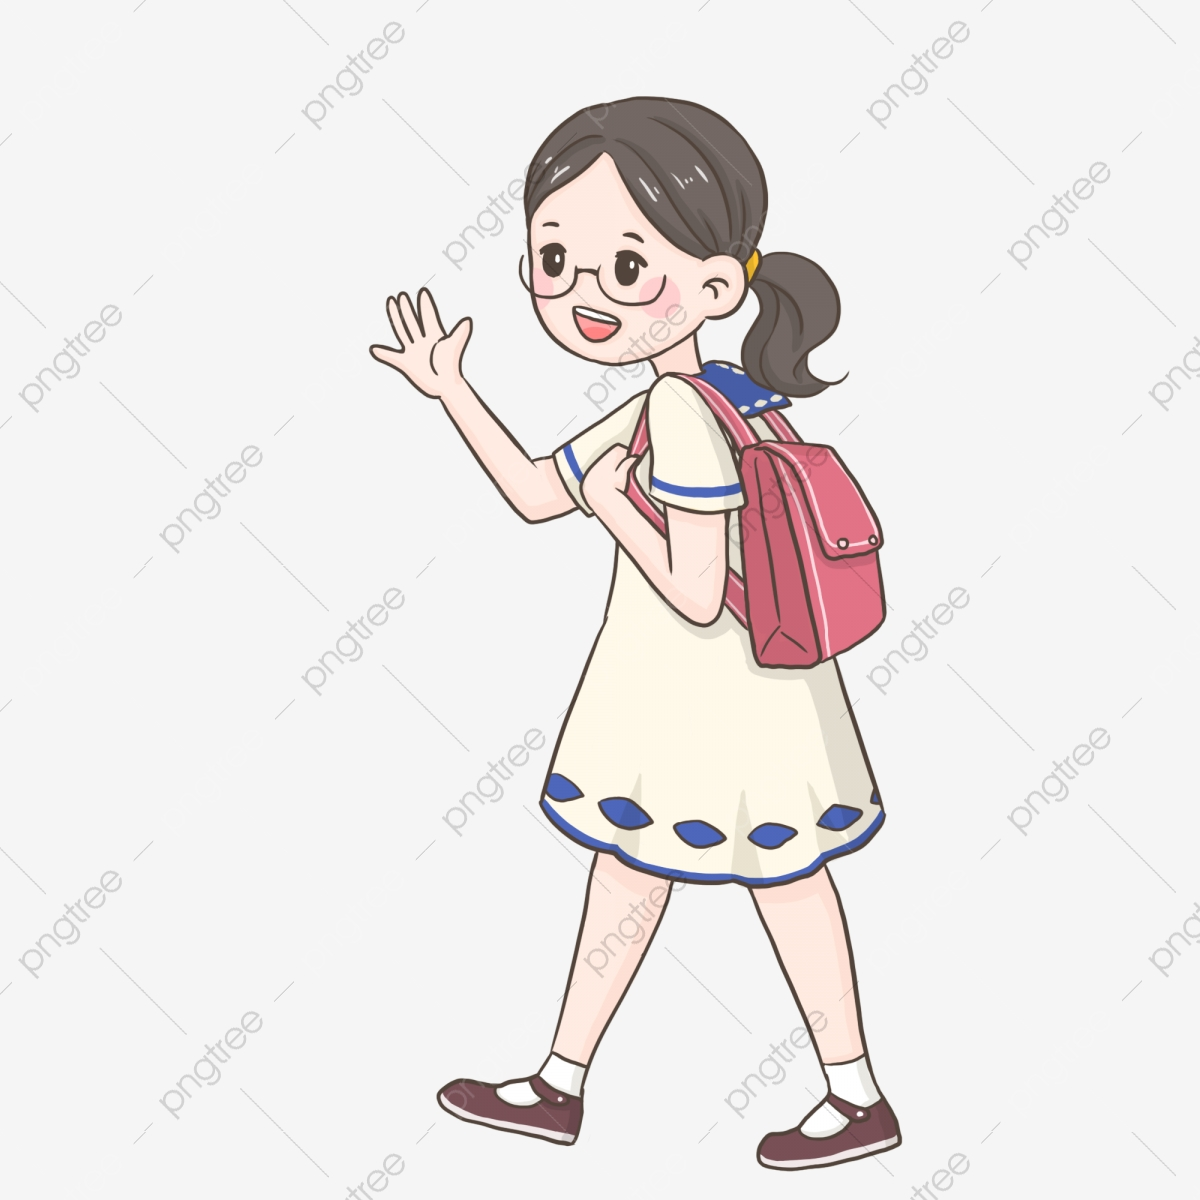 Bid Farewell To Parents Png School Season Students With Back Bags Children Png Transparent Clipart Image And Psd File For Free Download